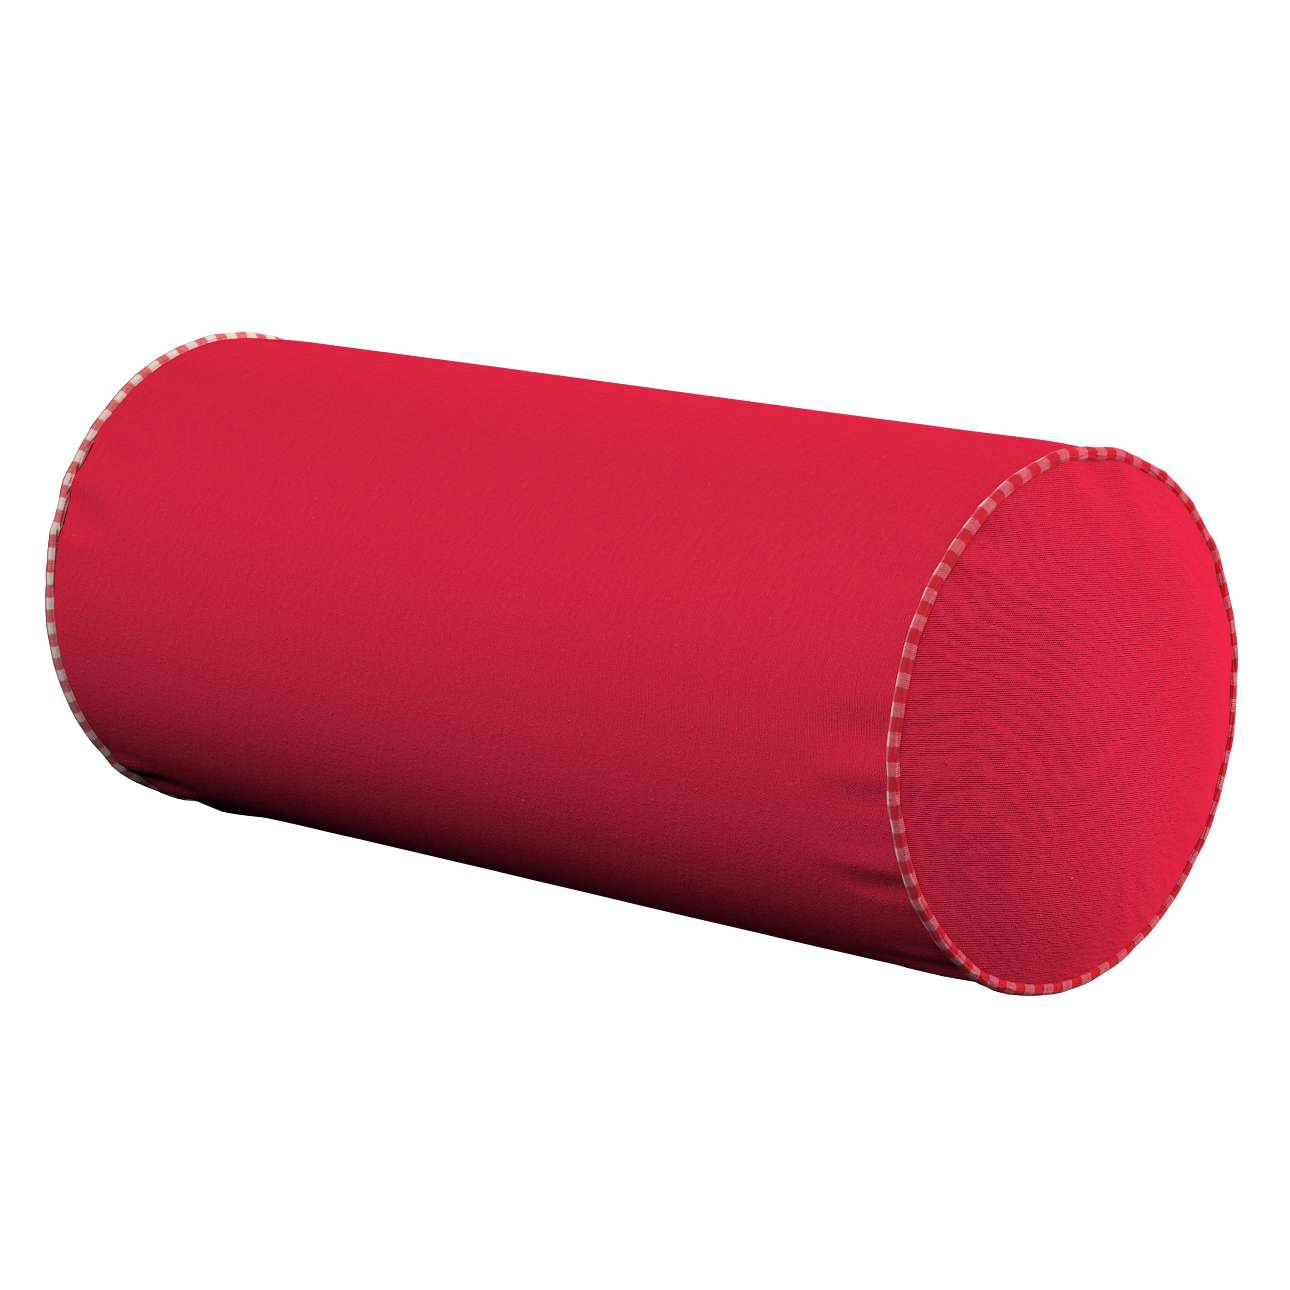 Bolster cushion  Ø 16 × 40 cm (6 × 16 inch) in collection Quadro, fabric: 136-19